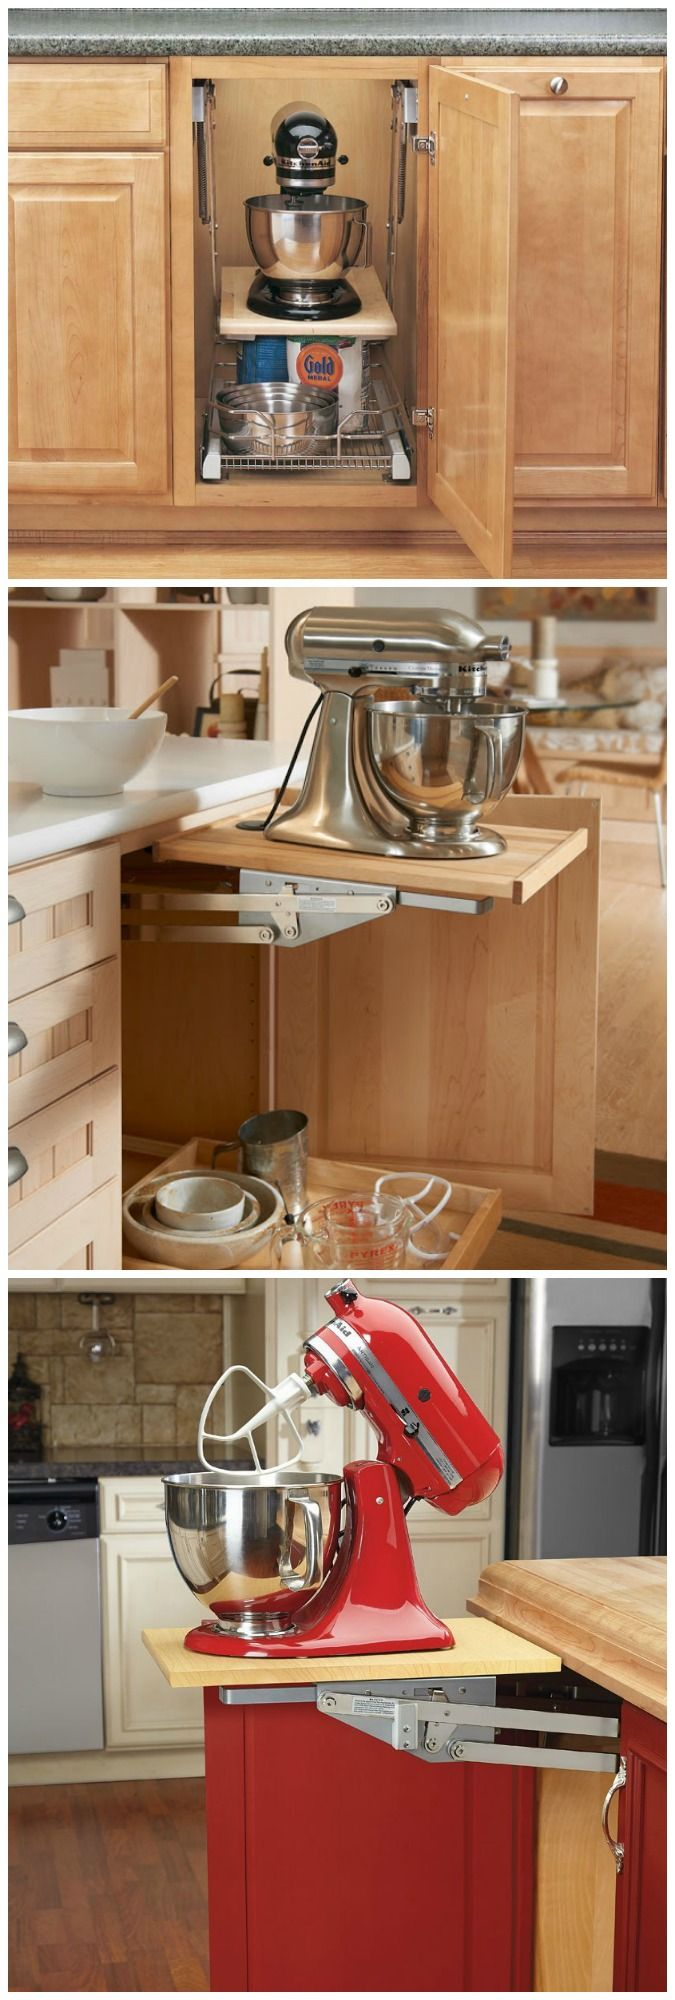 With the Rev-A-Shelf Appliance Lift it only takes seconds to raise your heavy-duty mixer and other heavy appliances out of its cabinet to counter-top level.